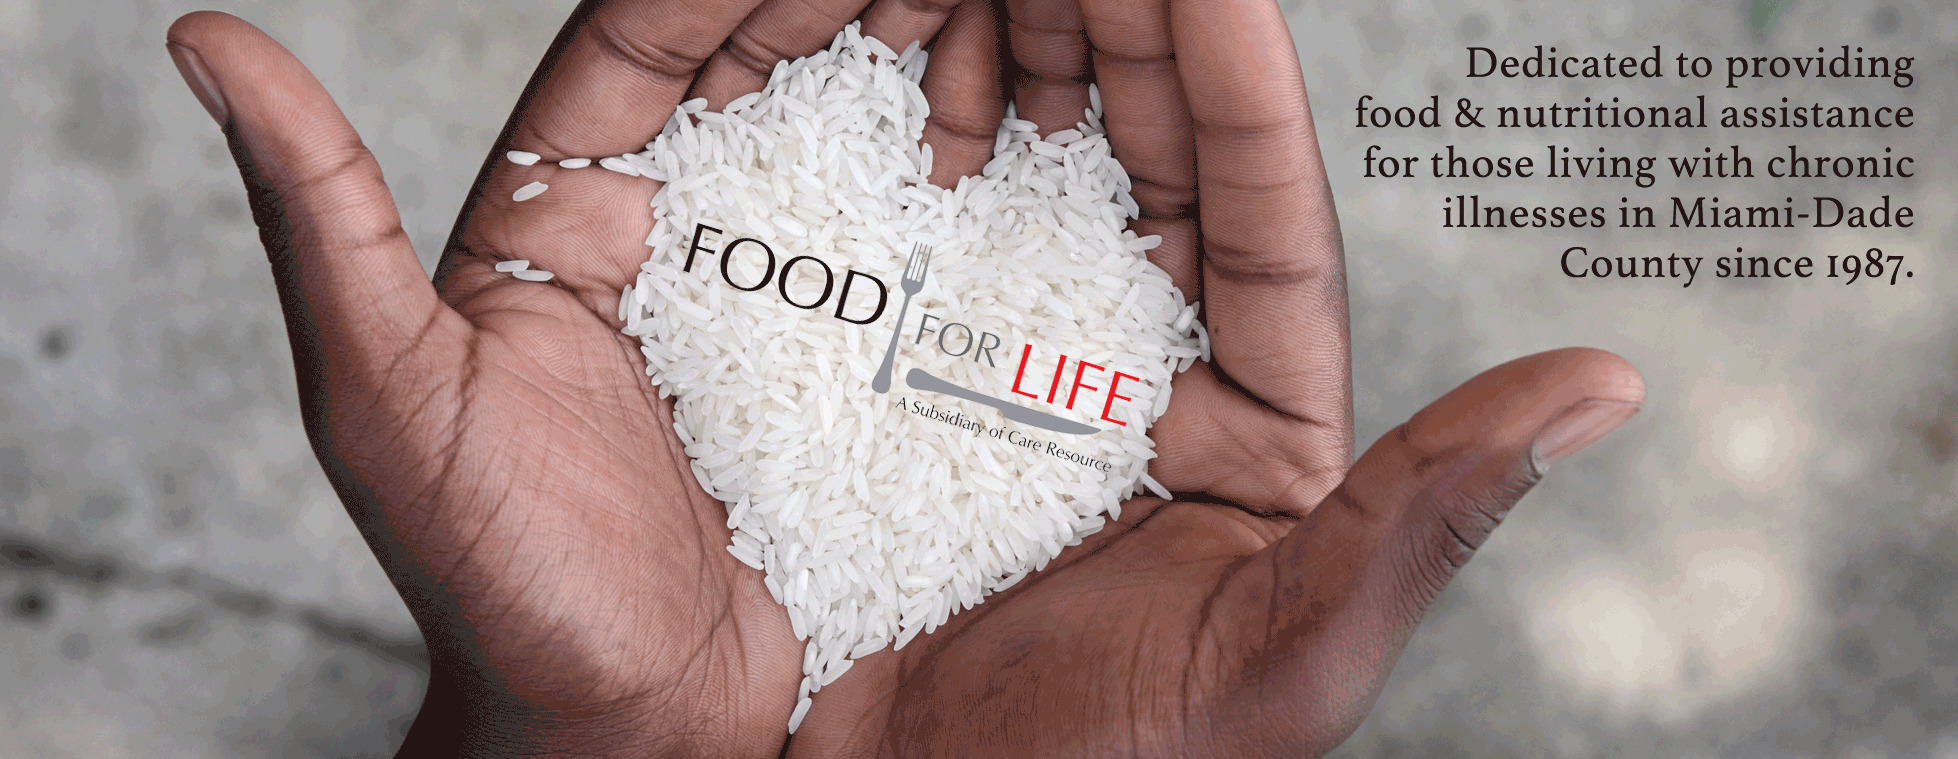 Food For Life Donation Page